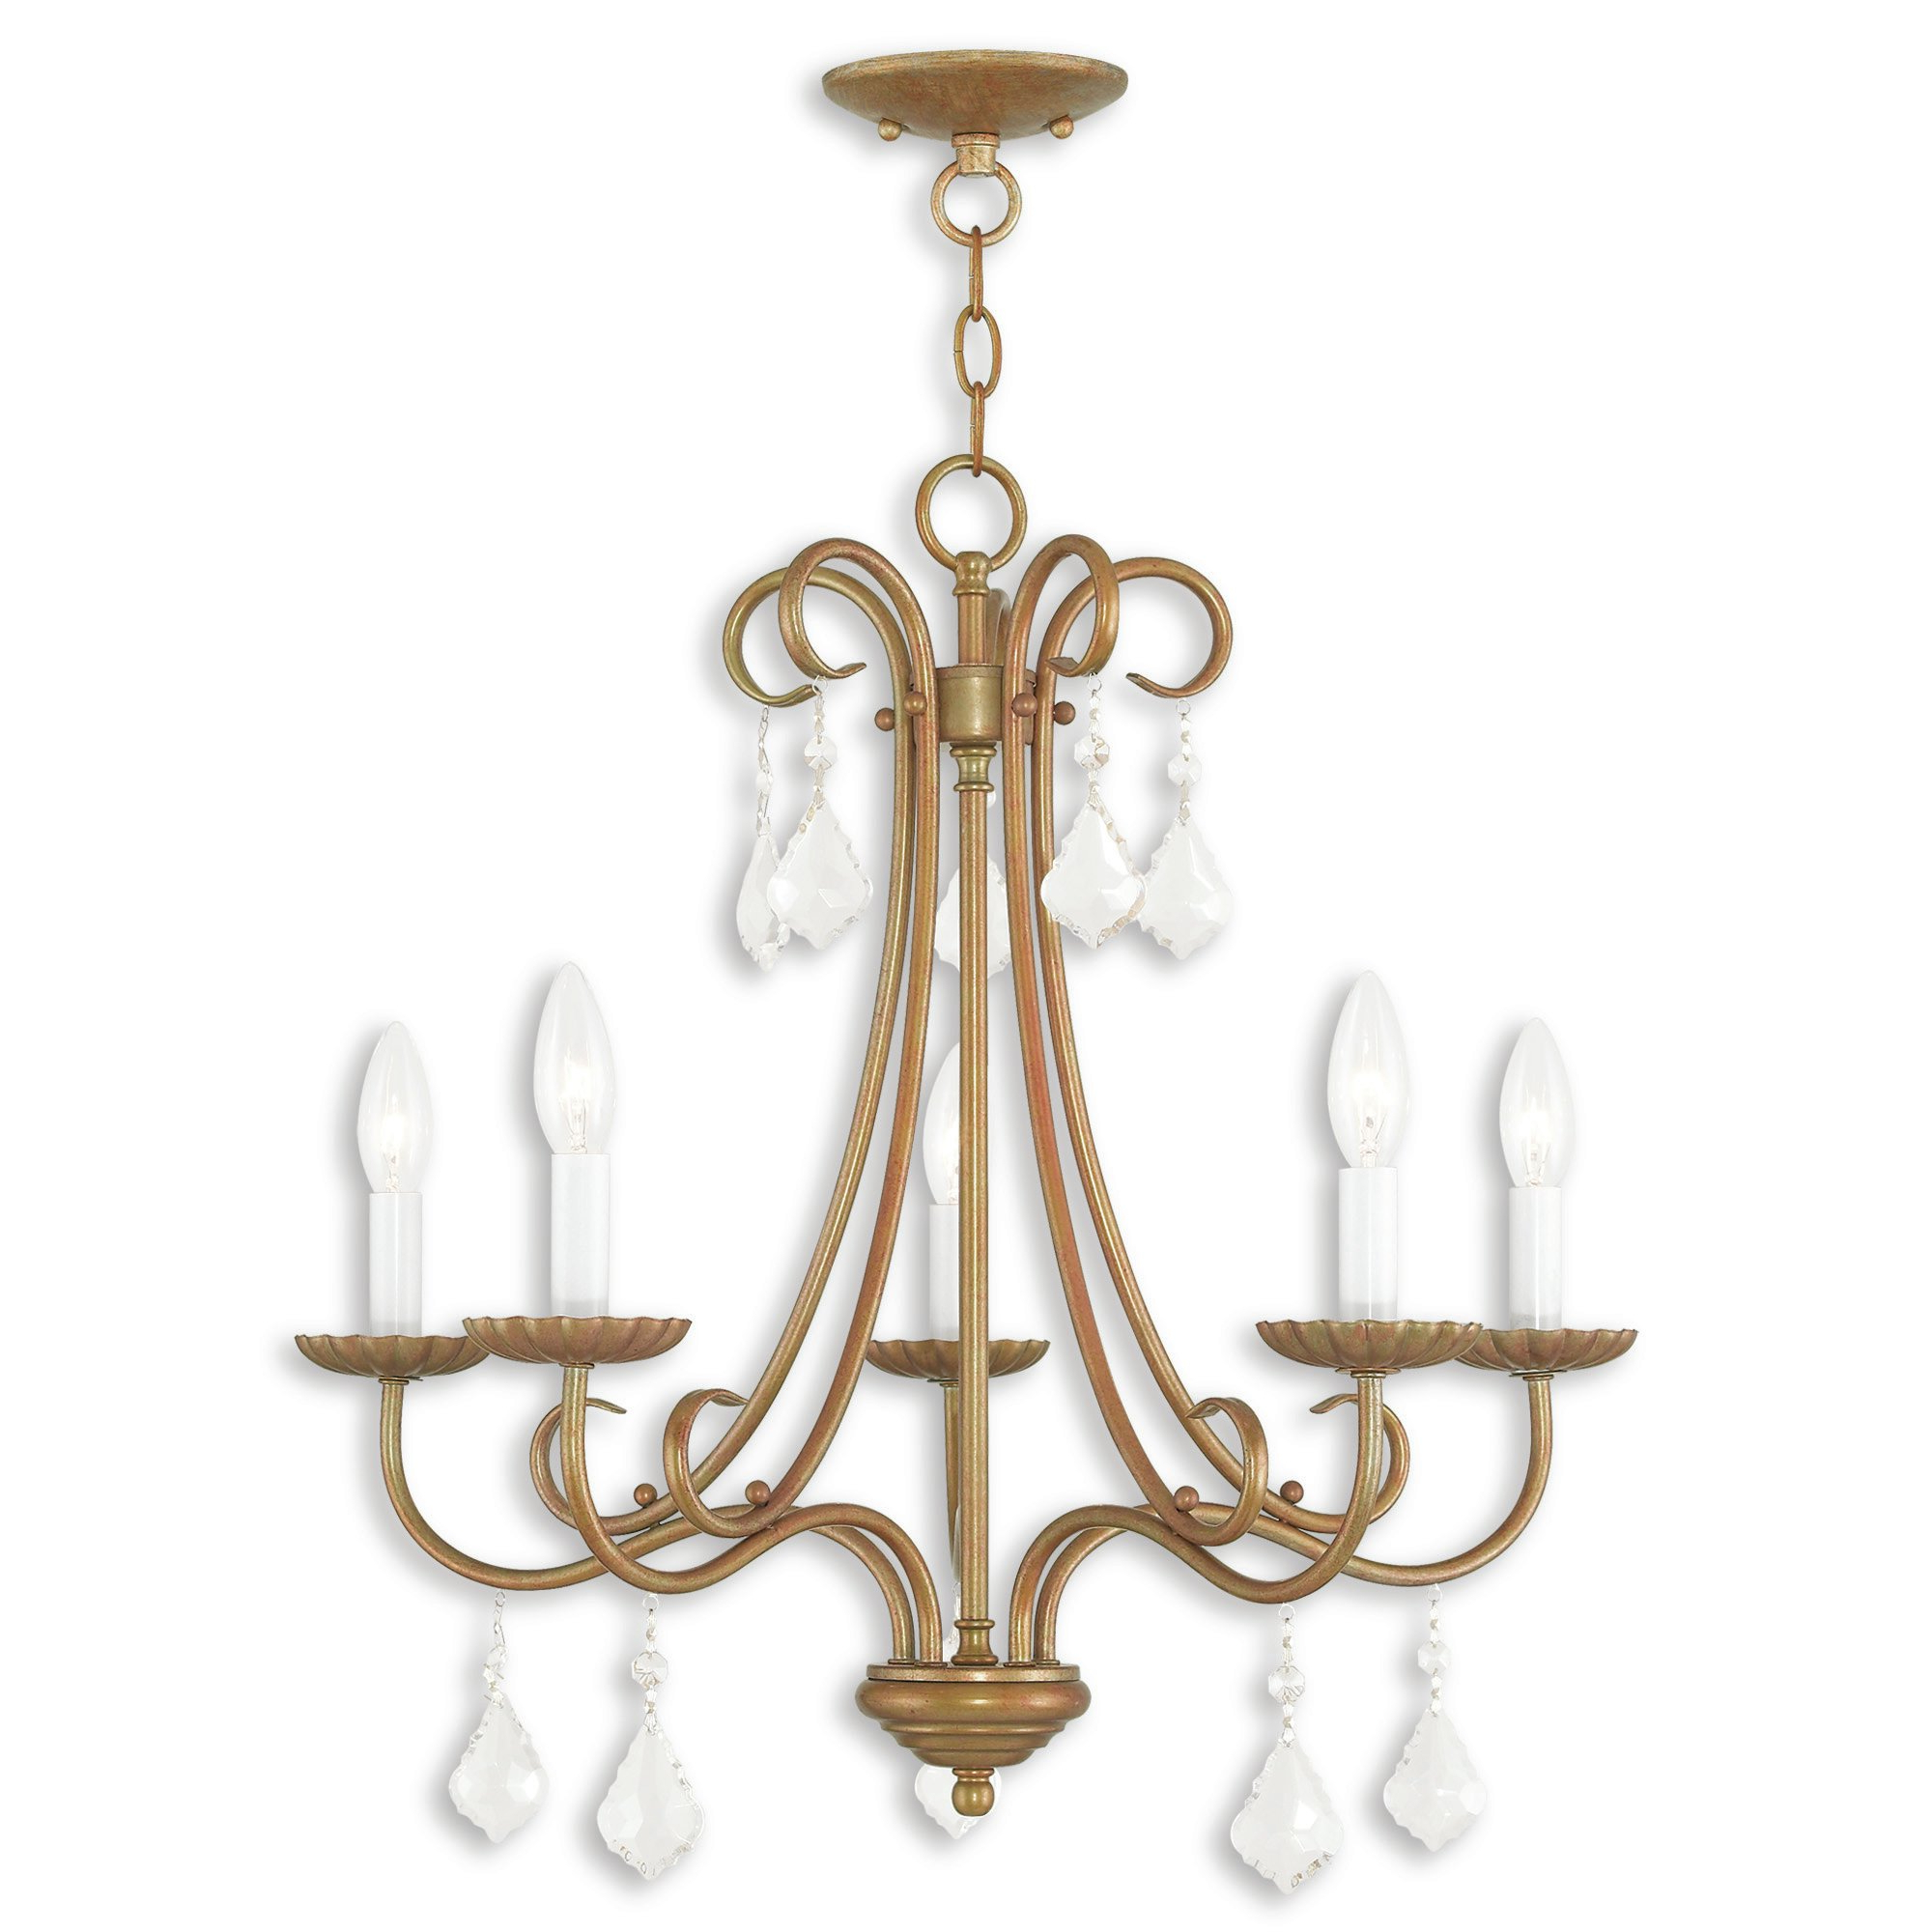 2019 Devan 5 Light Candle Style Chandelier Within Blanchette 5 Light Candle Style Chandeliers (View 15 of 20)